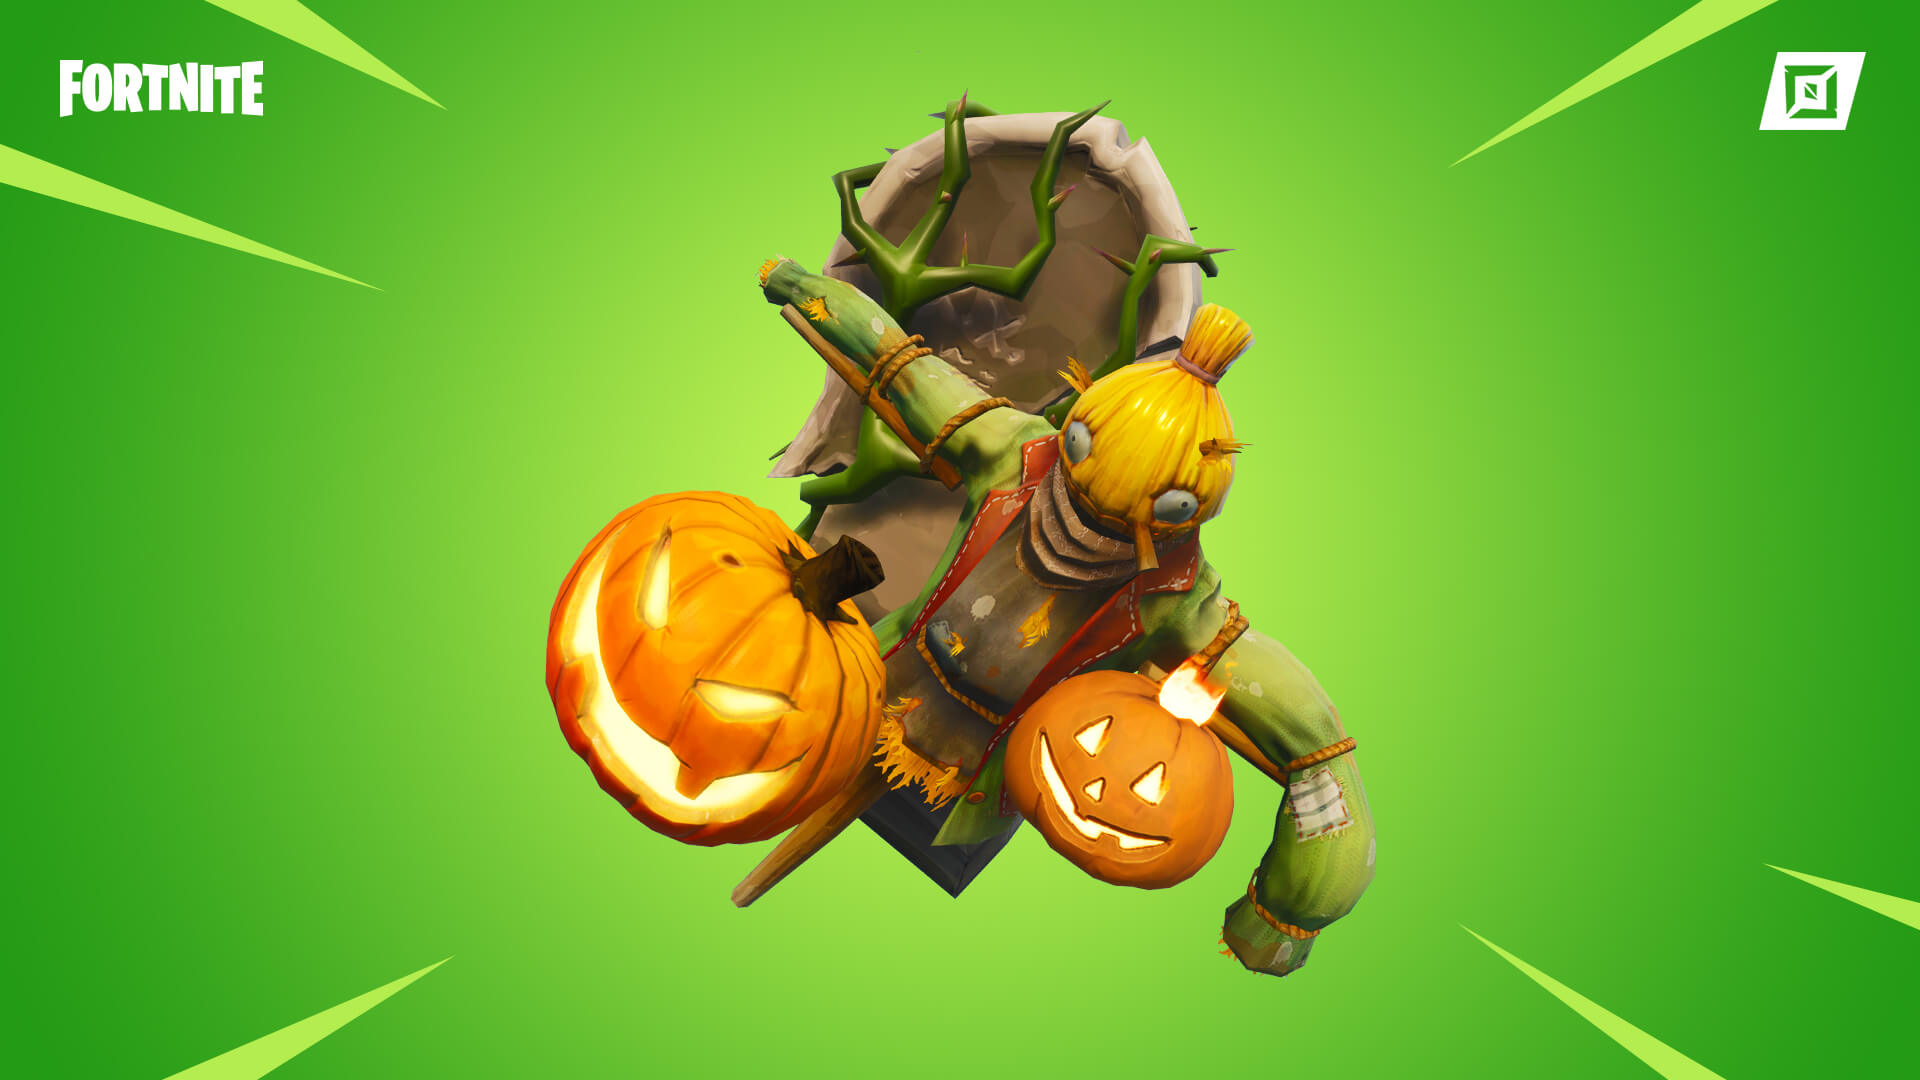 Fortnite_patch-notes_v10-40-patch-notes_creative-header-v10-40-patch-notes_10CM_HalloweenProp_...jpg